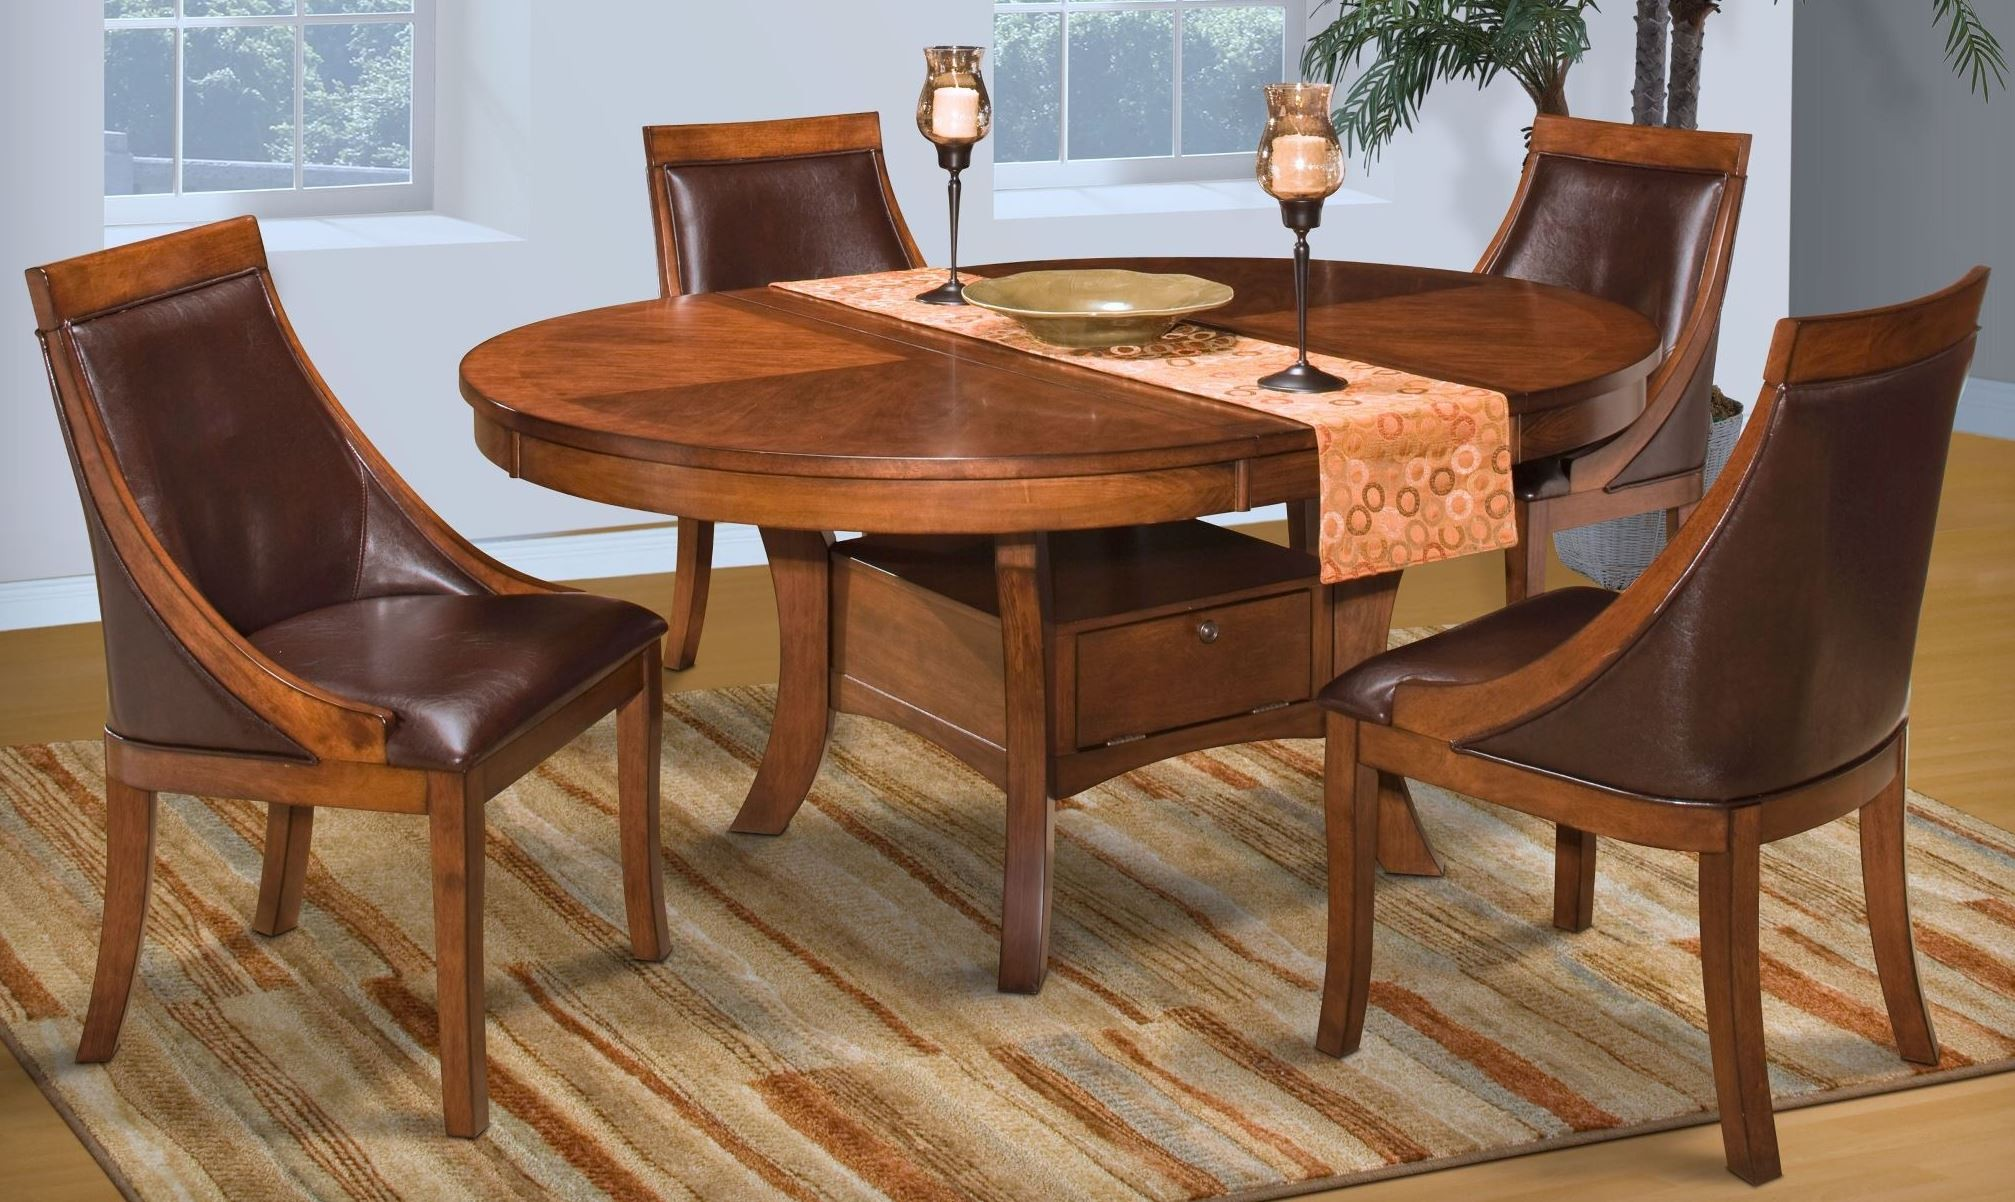 Aspen Round Extendable Dining Room Set From New Classics 40 116 11 11b Coleman Furniture